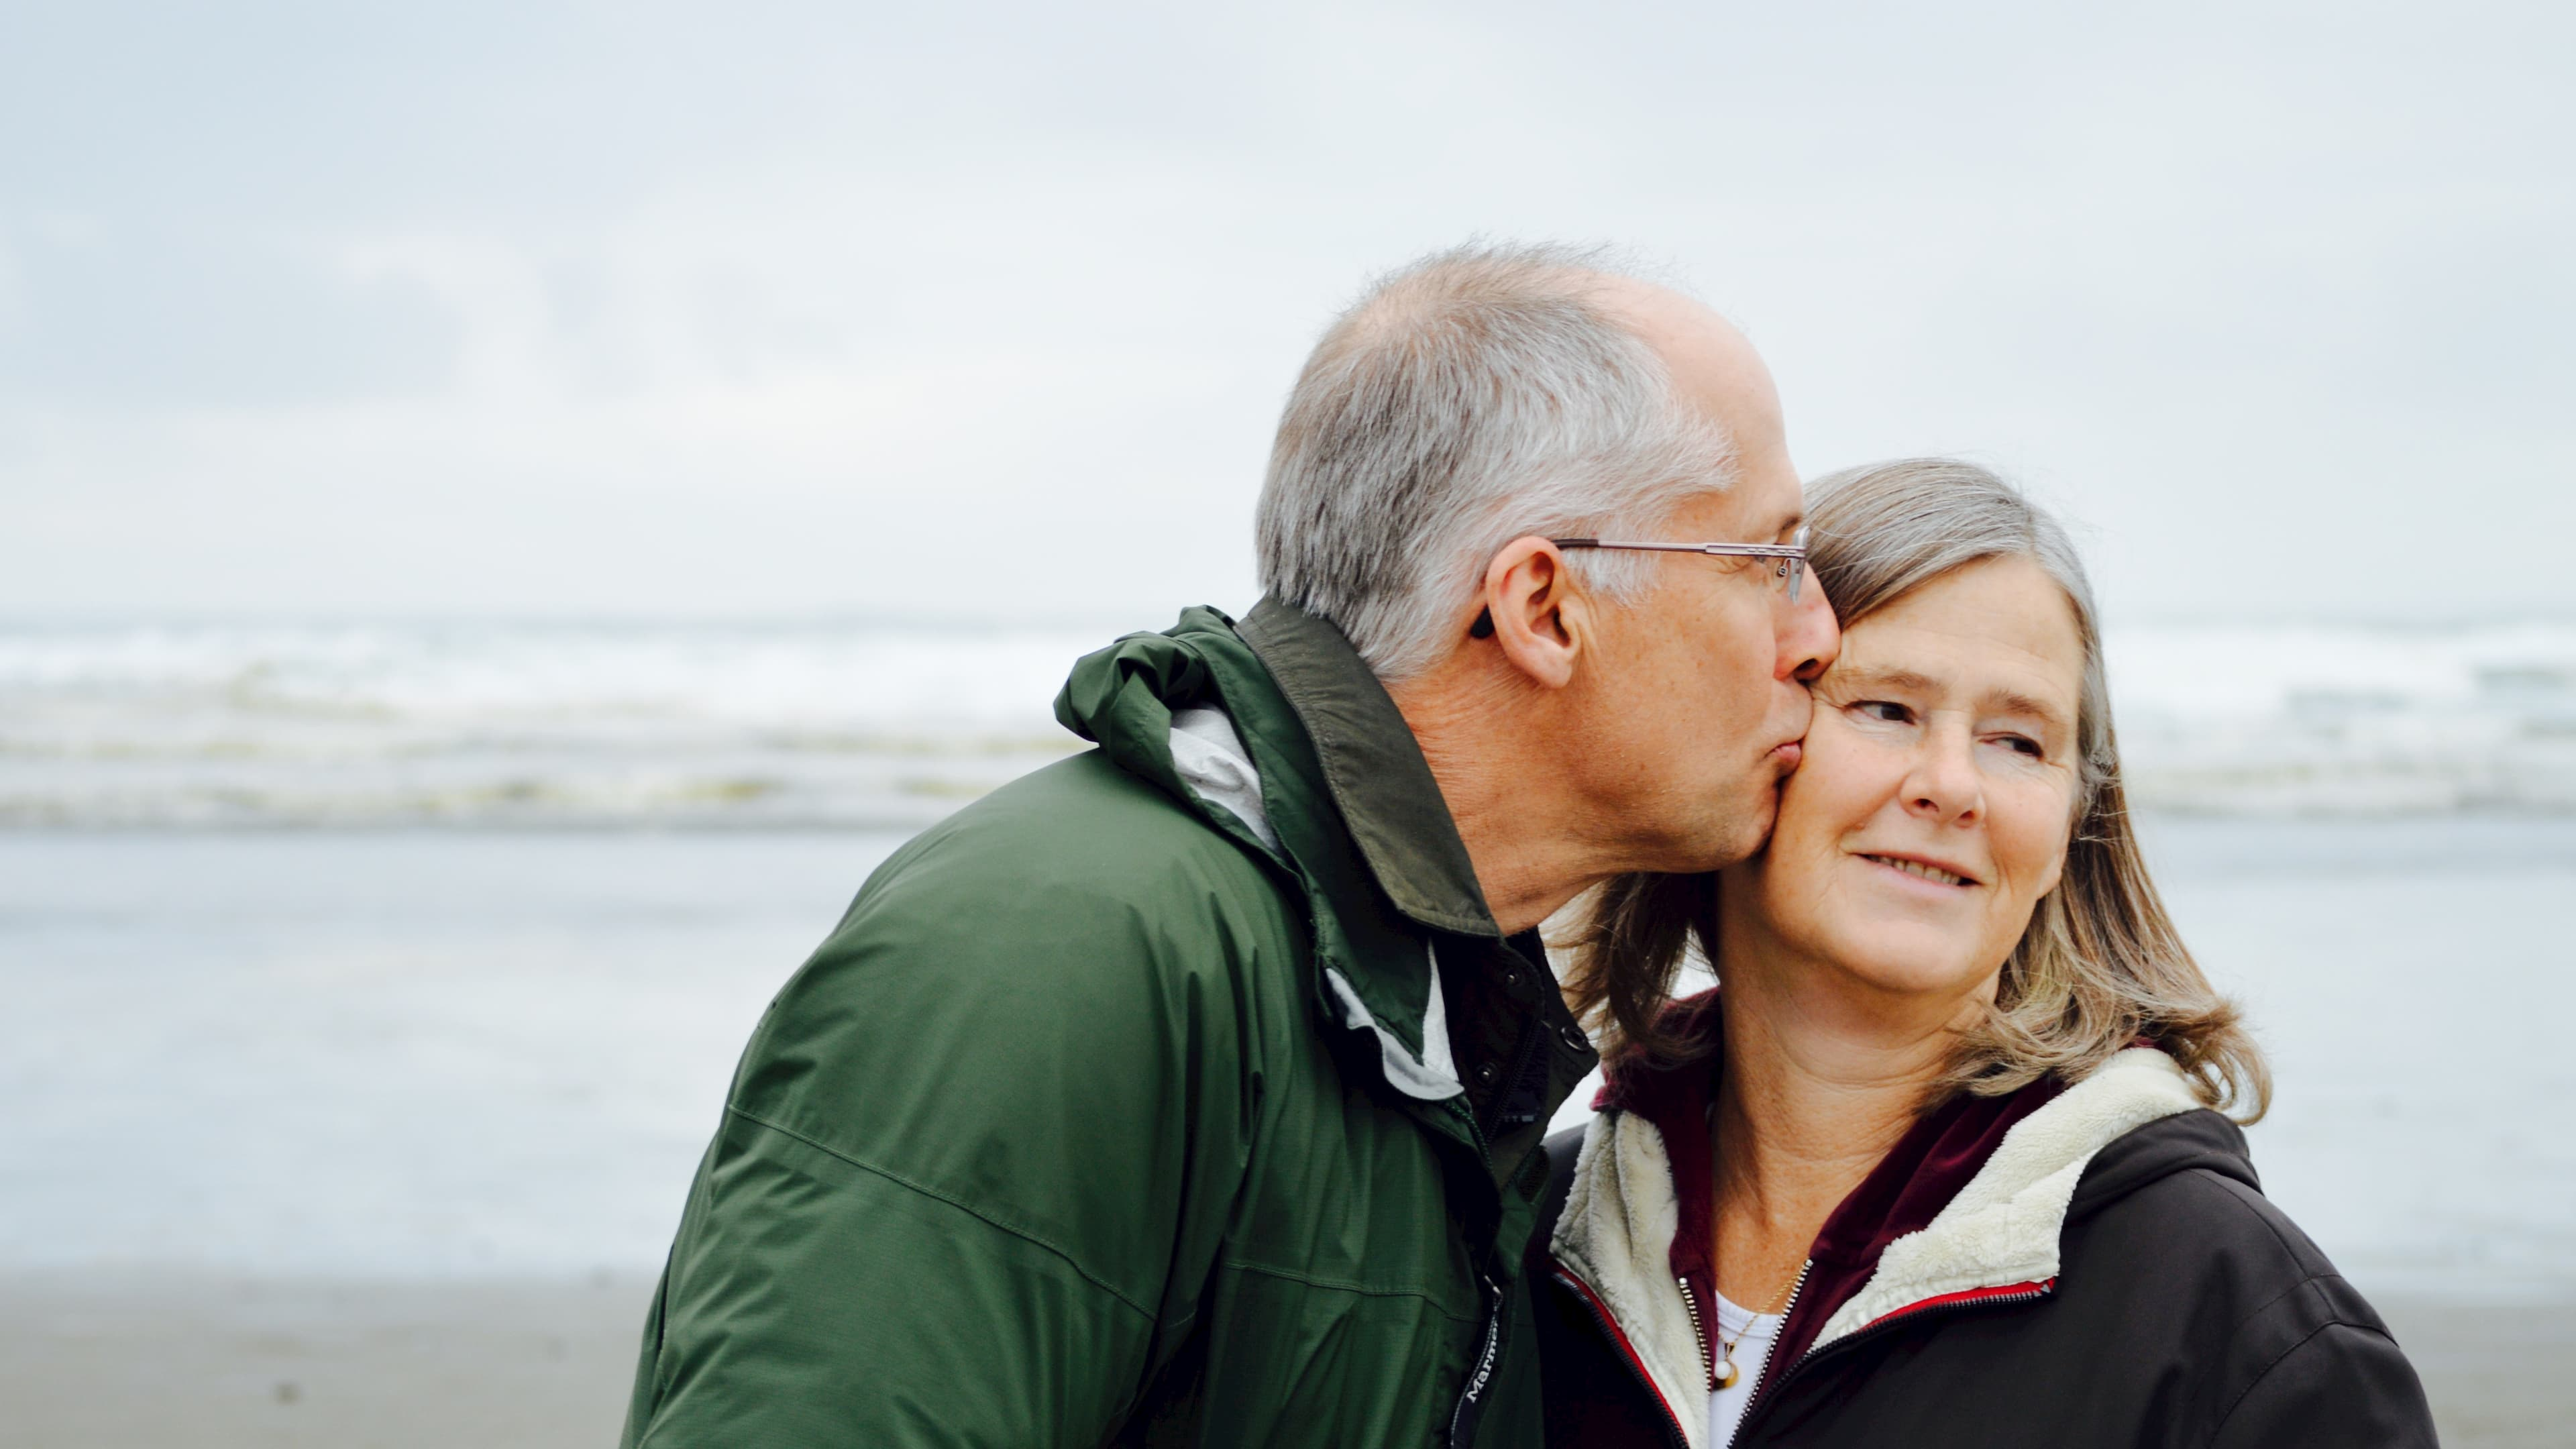 Elderly man kissing elderly woman on cheek in front of beach on cold day